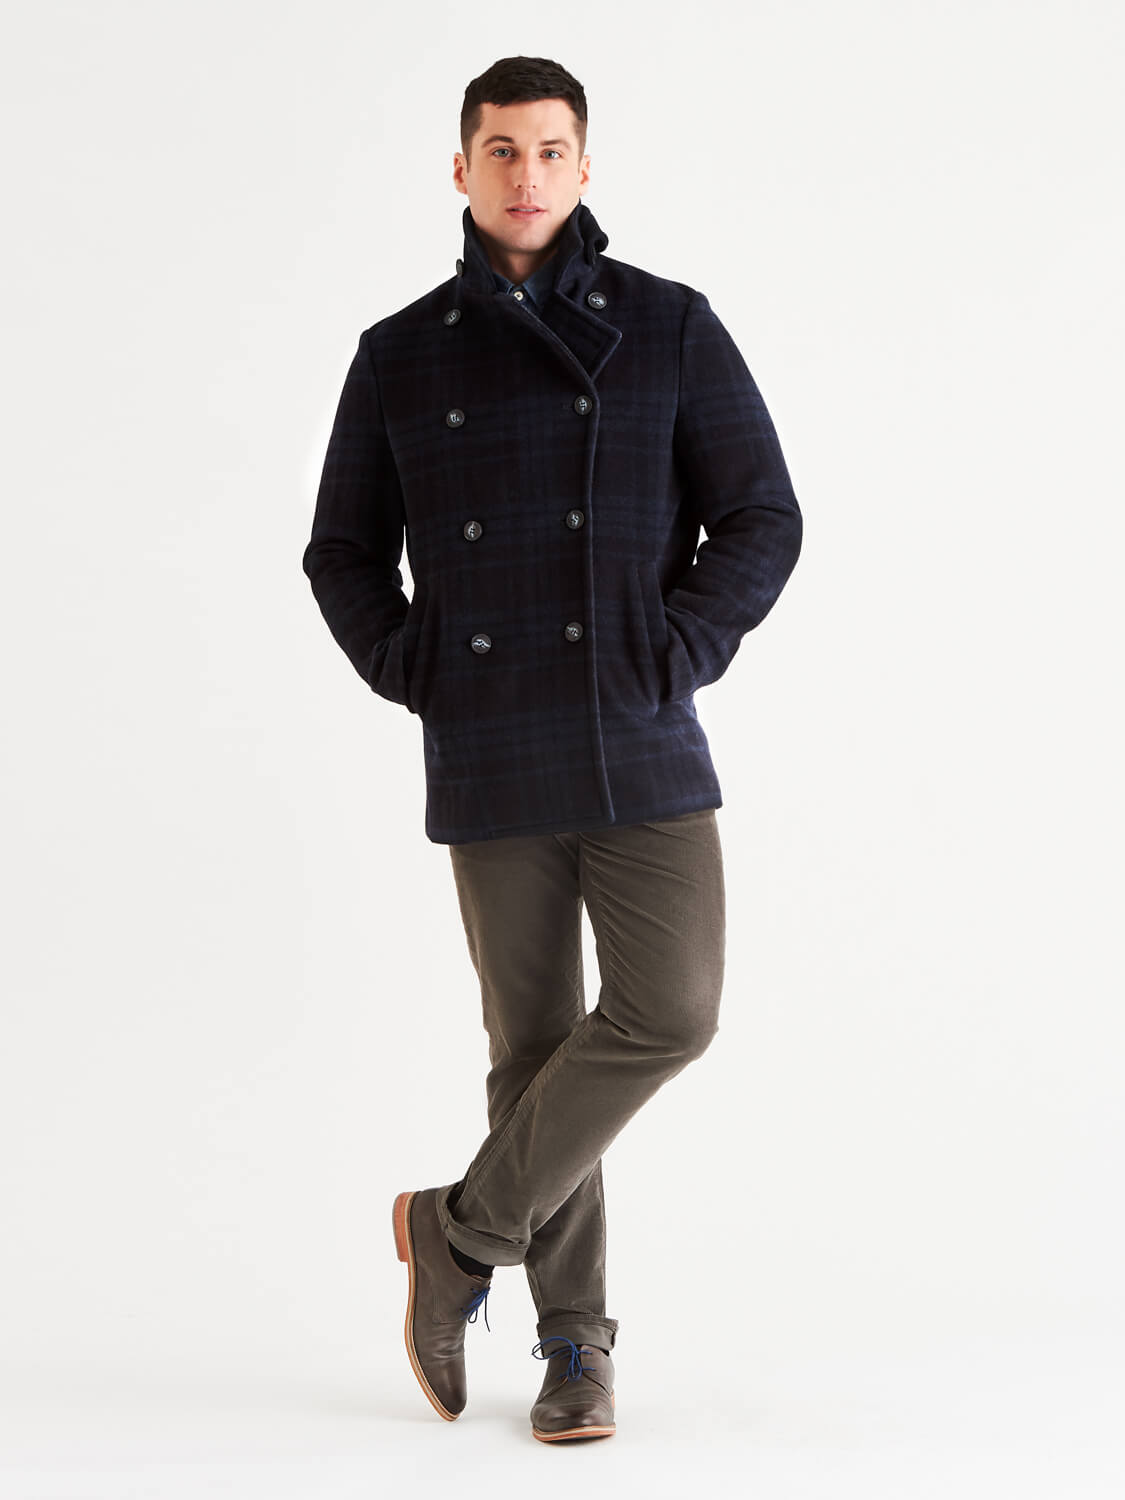 Stewart StormLux™ Plaid Wool Cashmere Peacoat